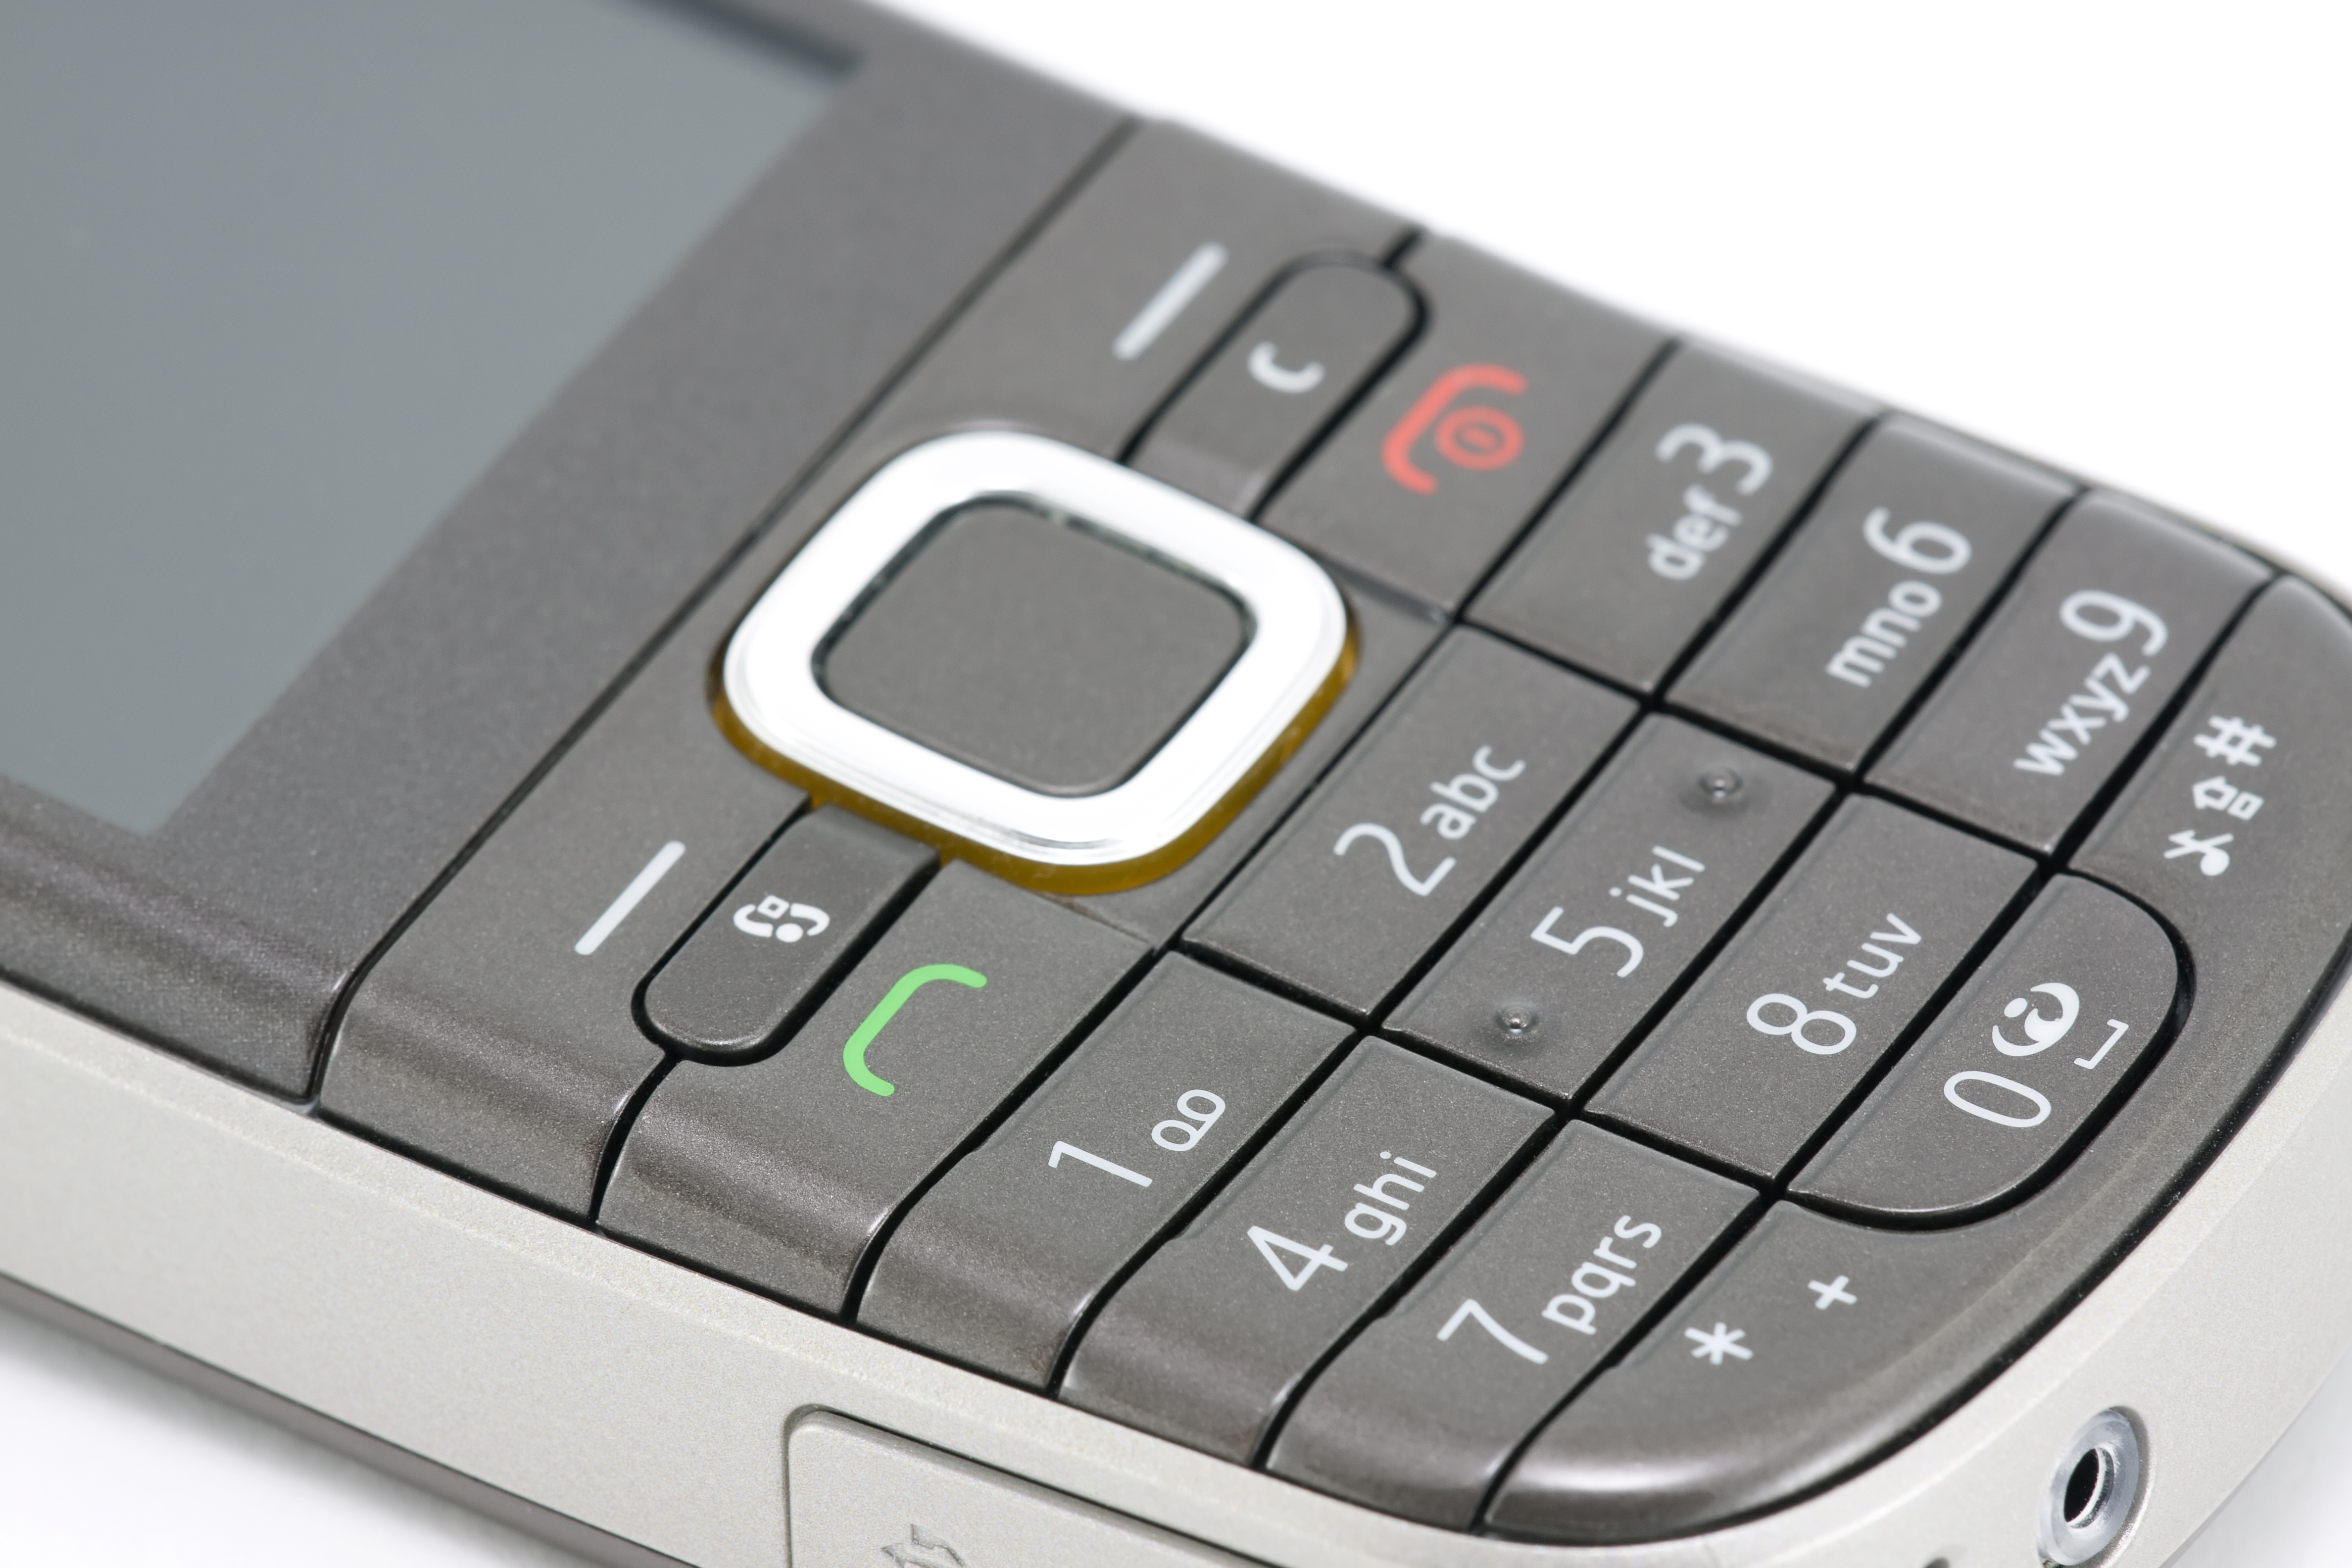 It's 2011. Why haven't you gone mobile?